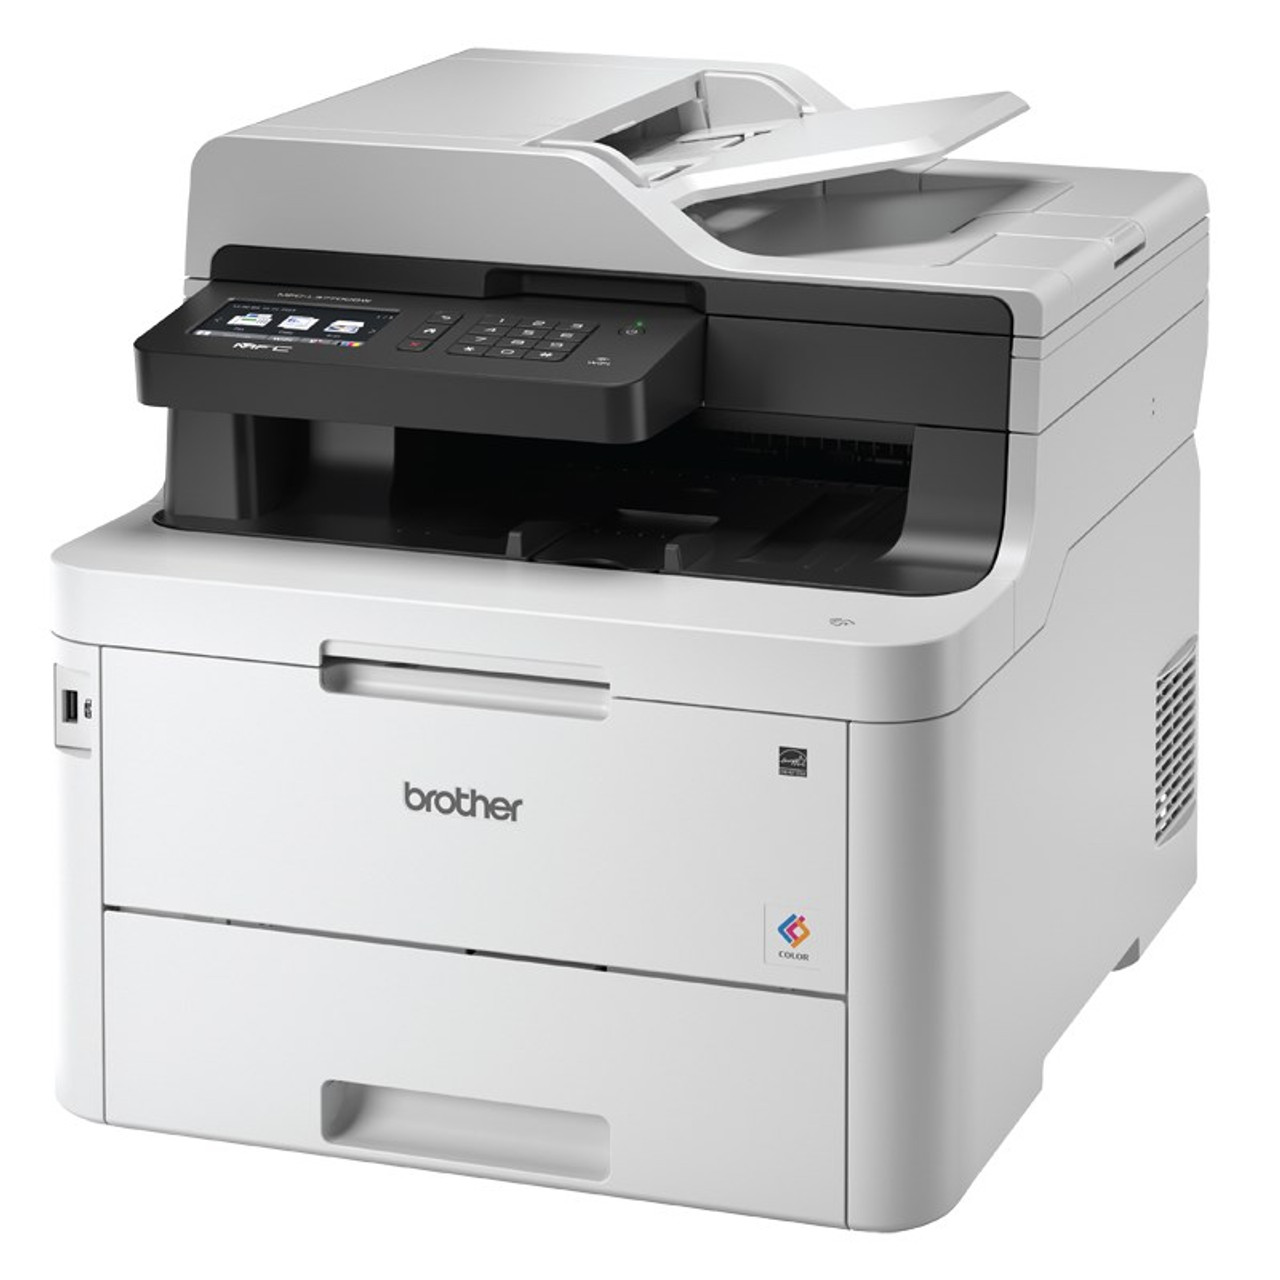 Product image for Brother MFC-L3770CDW Multi Function Colour Laser Printer | CX Computer Superstore